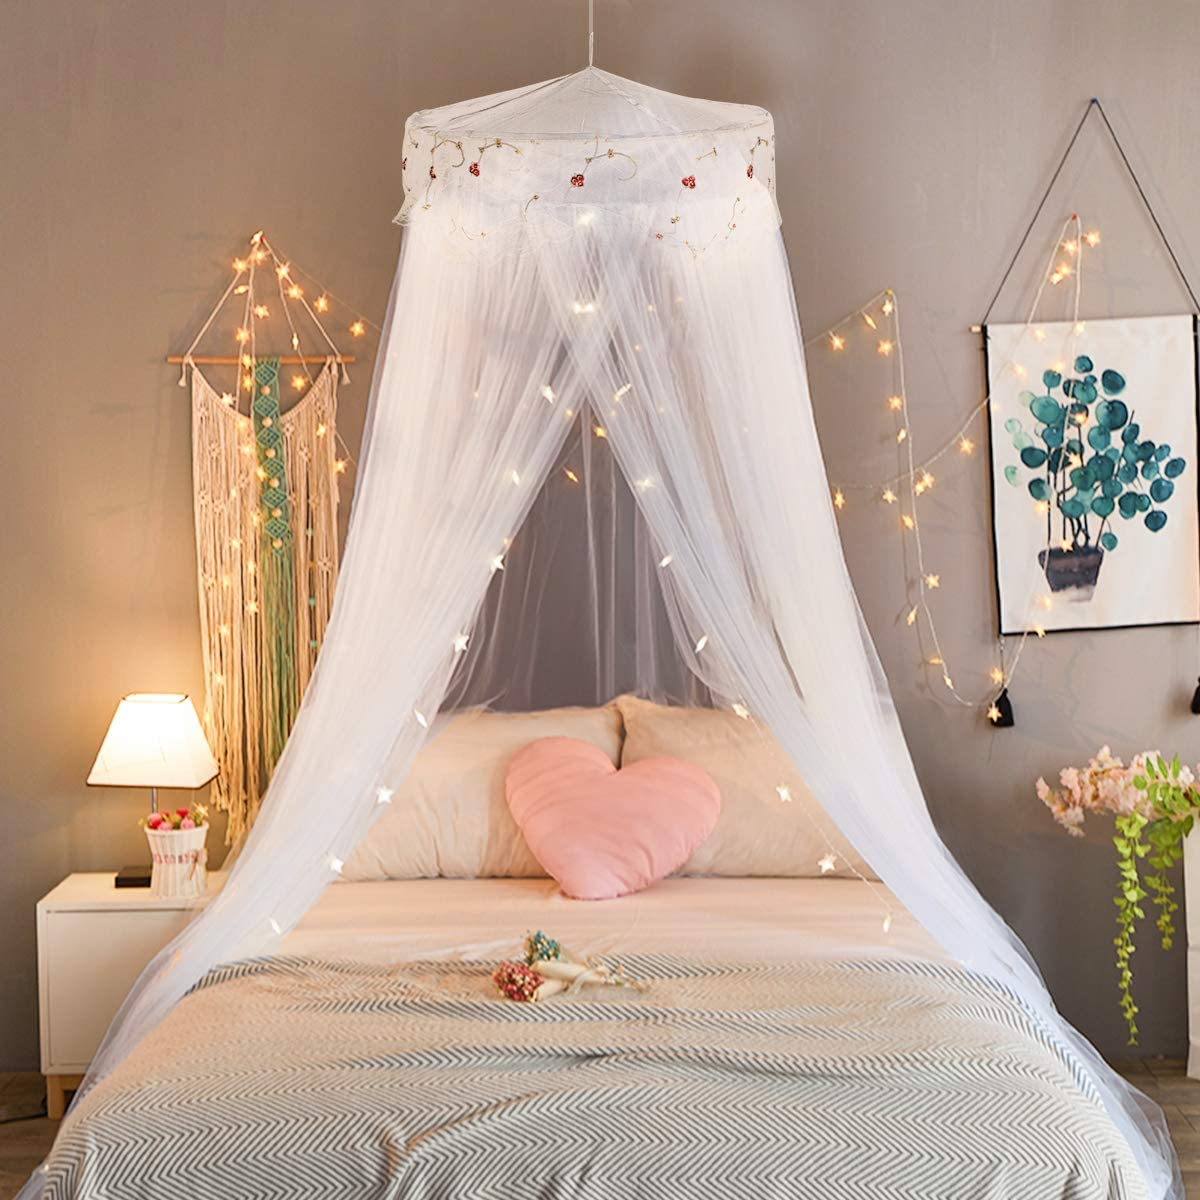 Amazon Com Jeteven Girl Bed Canopy Lace Mosquito Net For Girls Bed Princess Play Tent Reading Nook Round Lace Dome Curtains Baby Kids Games House White Home Kitchen